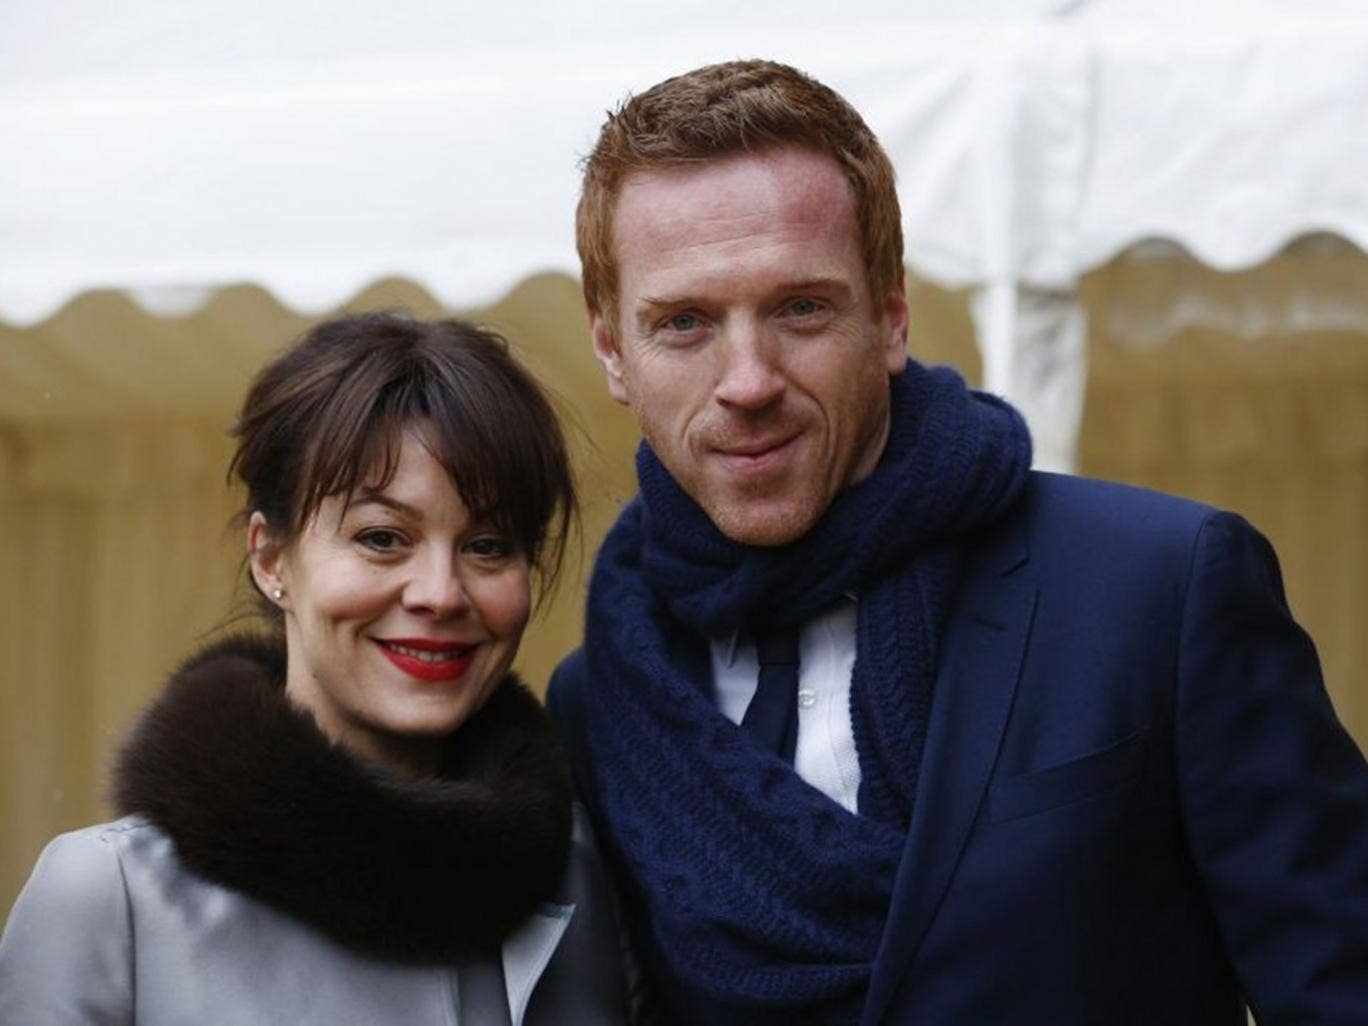 Actor Damian Lewis was not recognised while watching his wife Helen McCrory play Medea